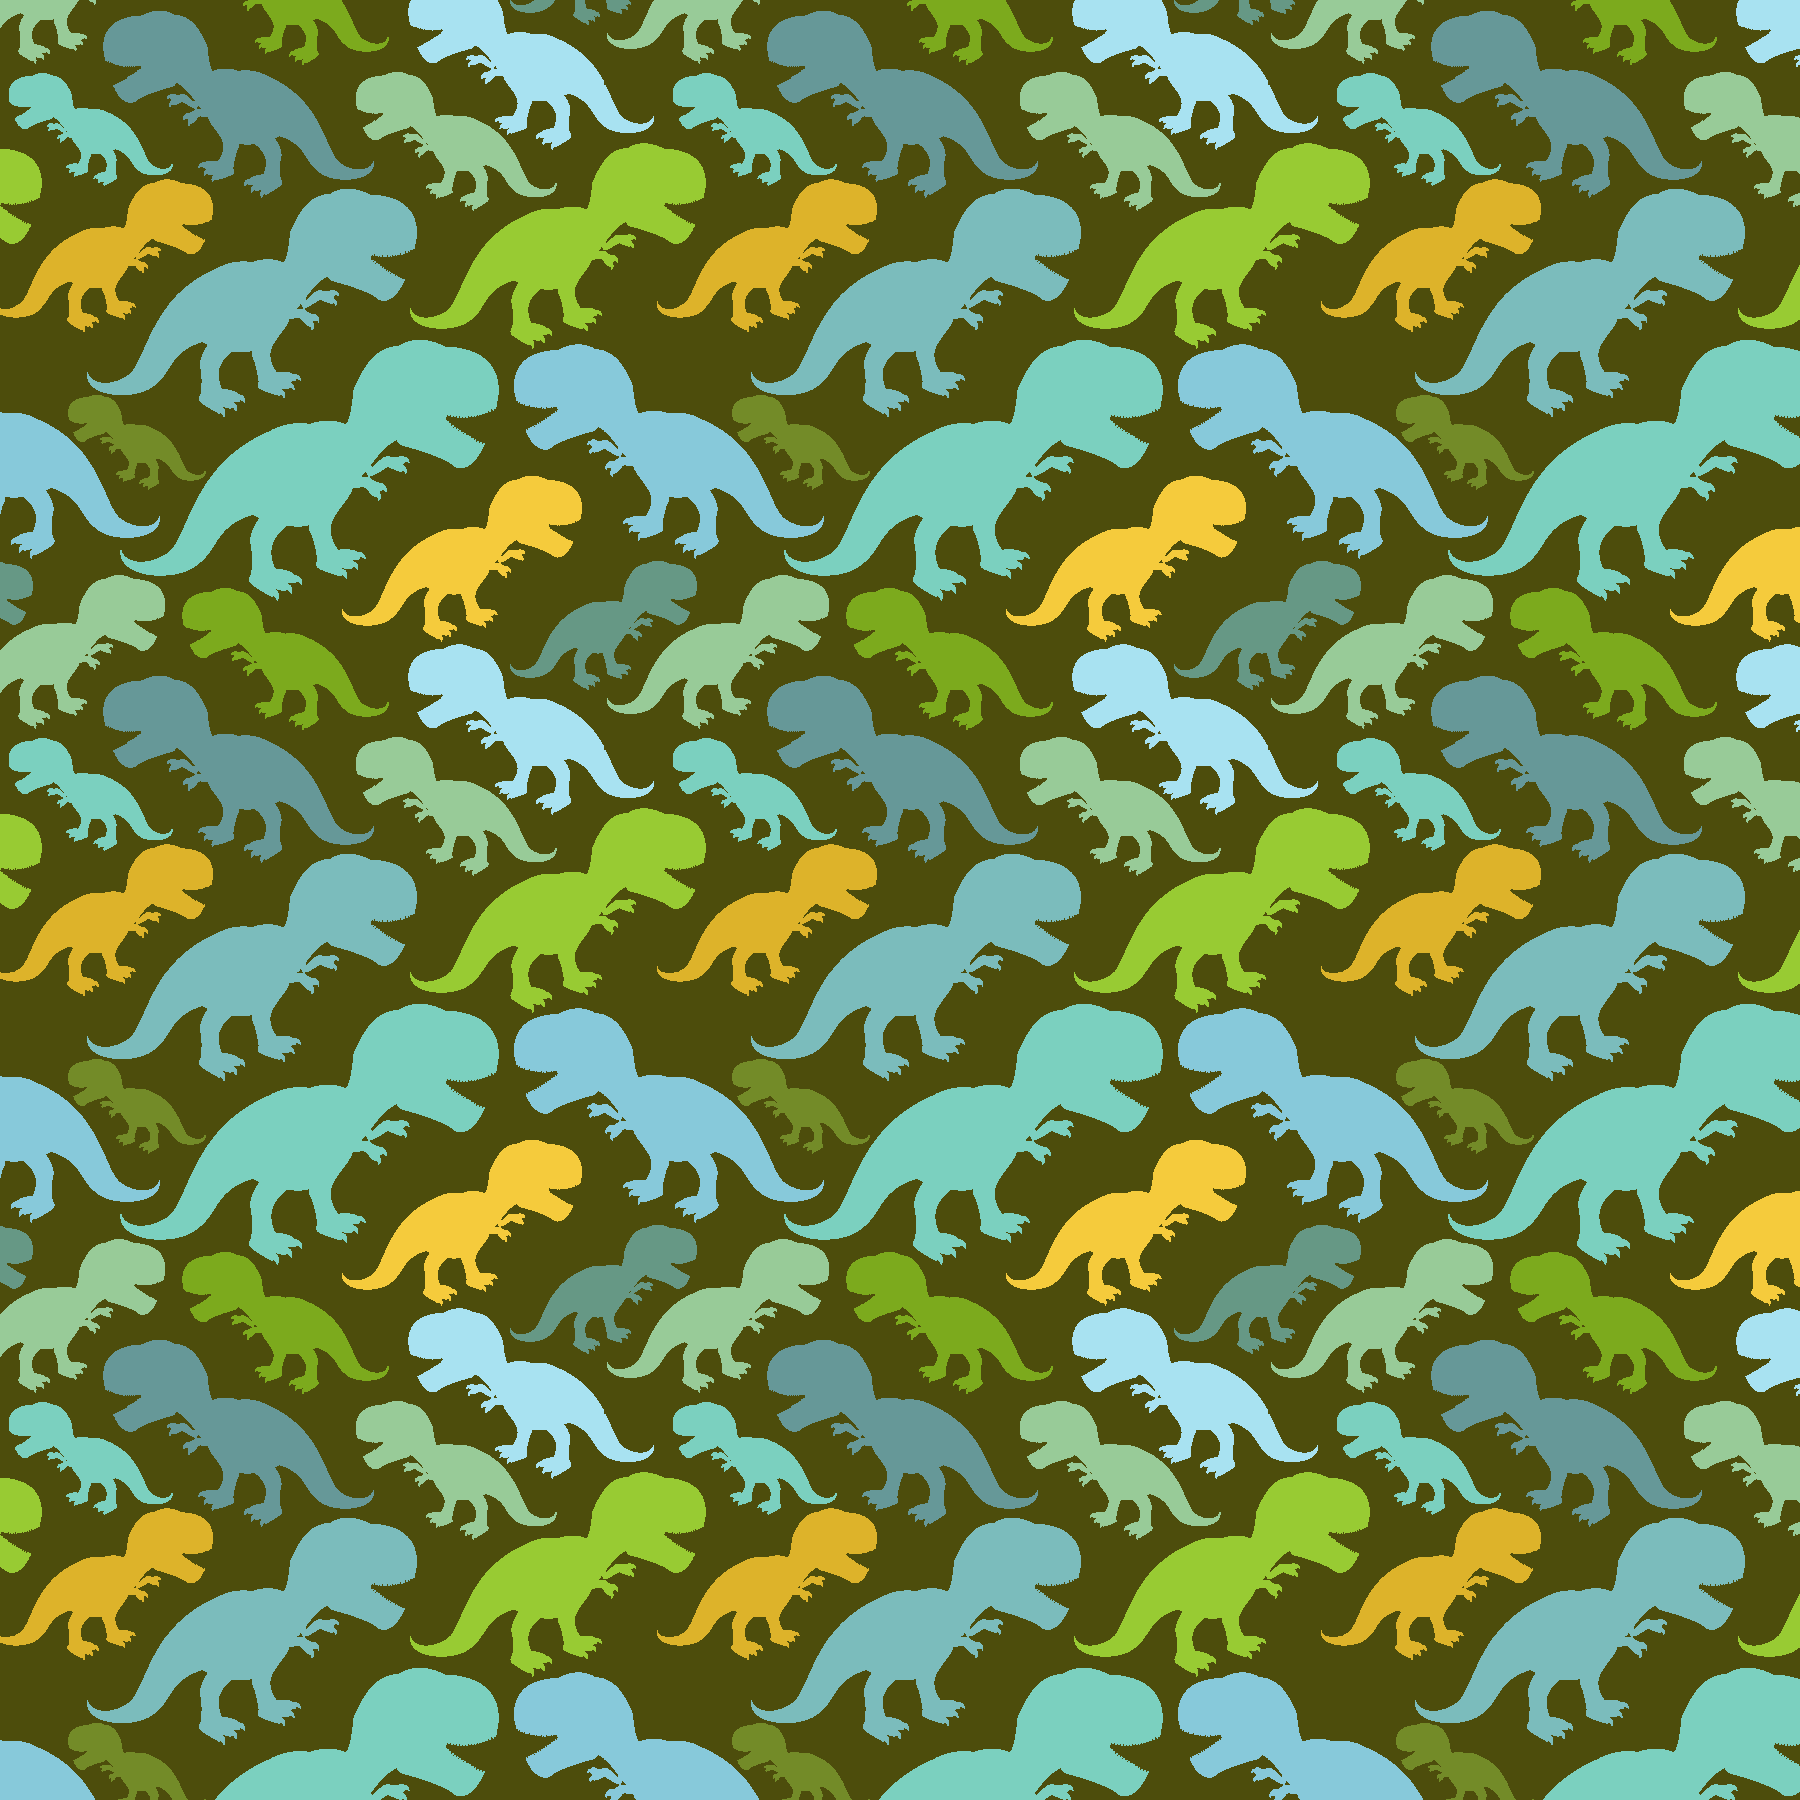 Dino Roar Dinosaur Patterned Vinyl - Craft Vinyl - Printed Adhesive 651 and Heat Transfer HTV